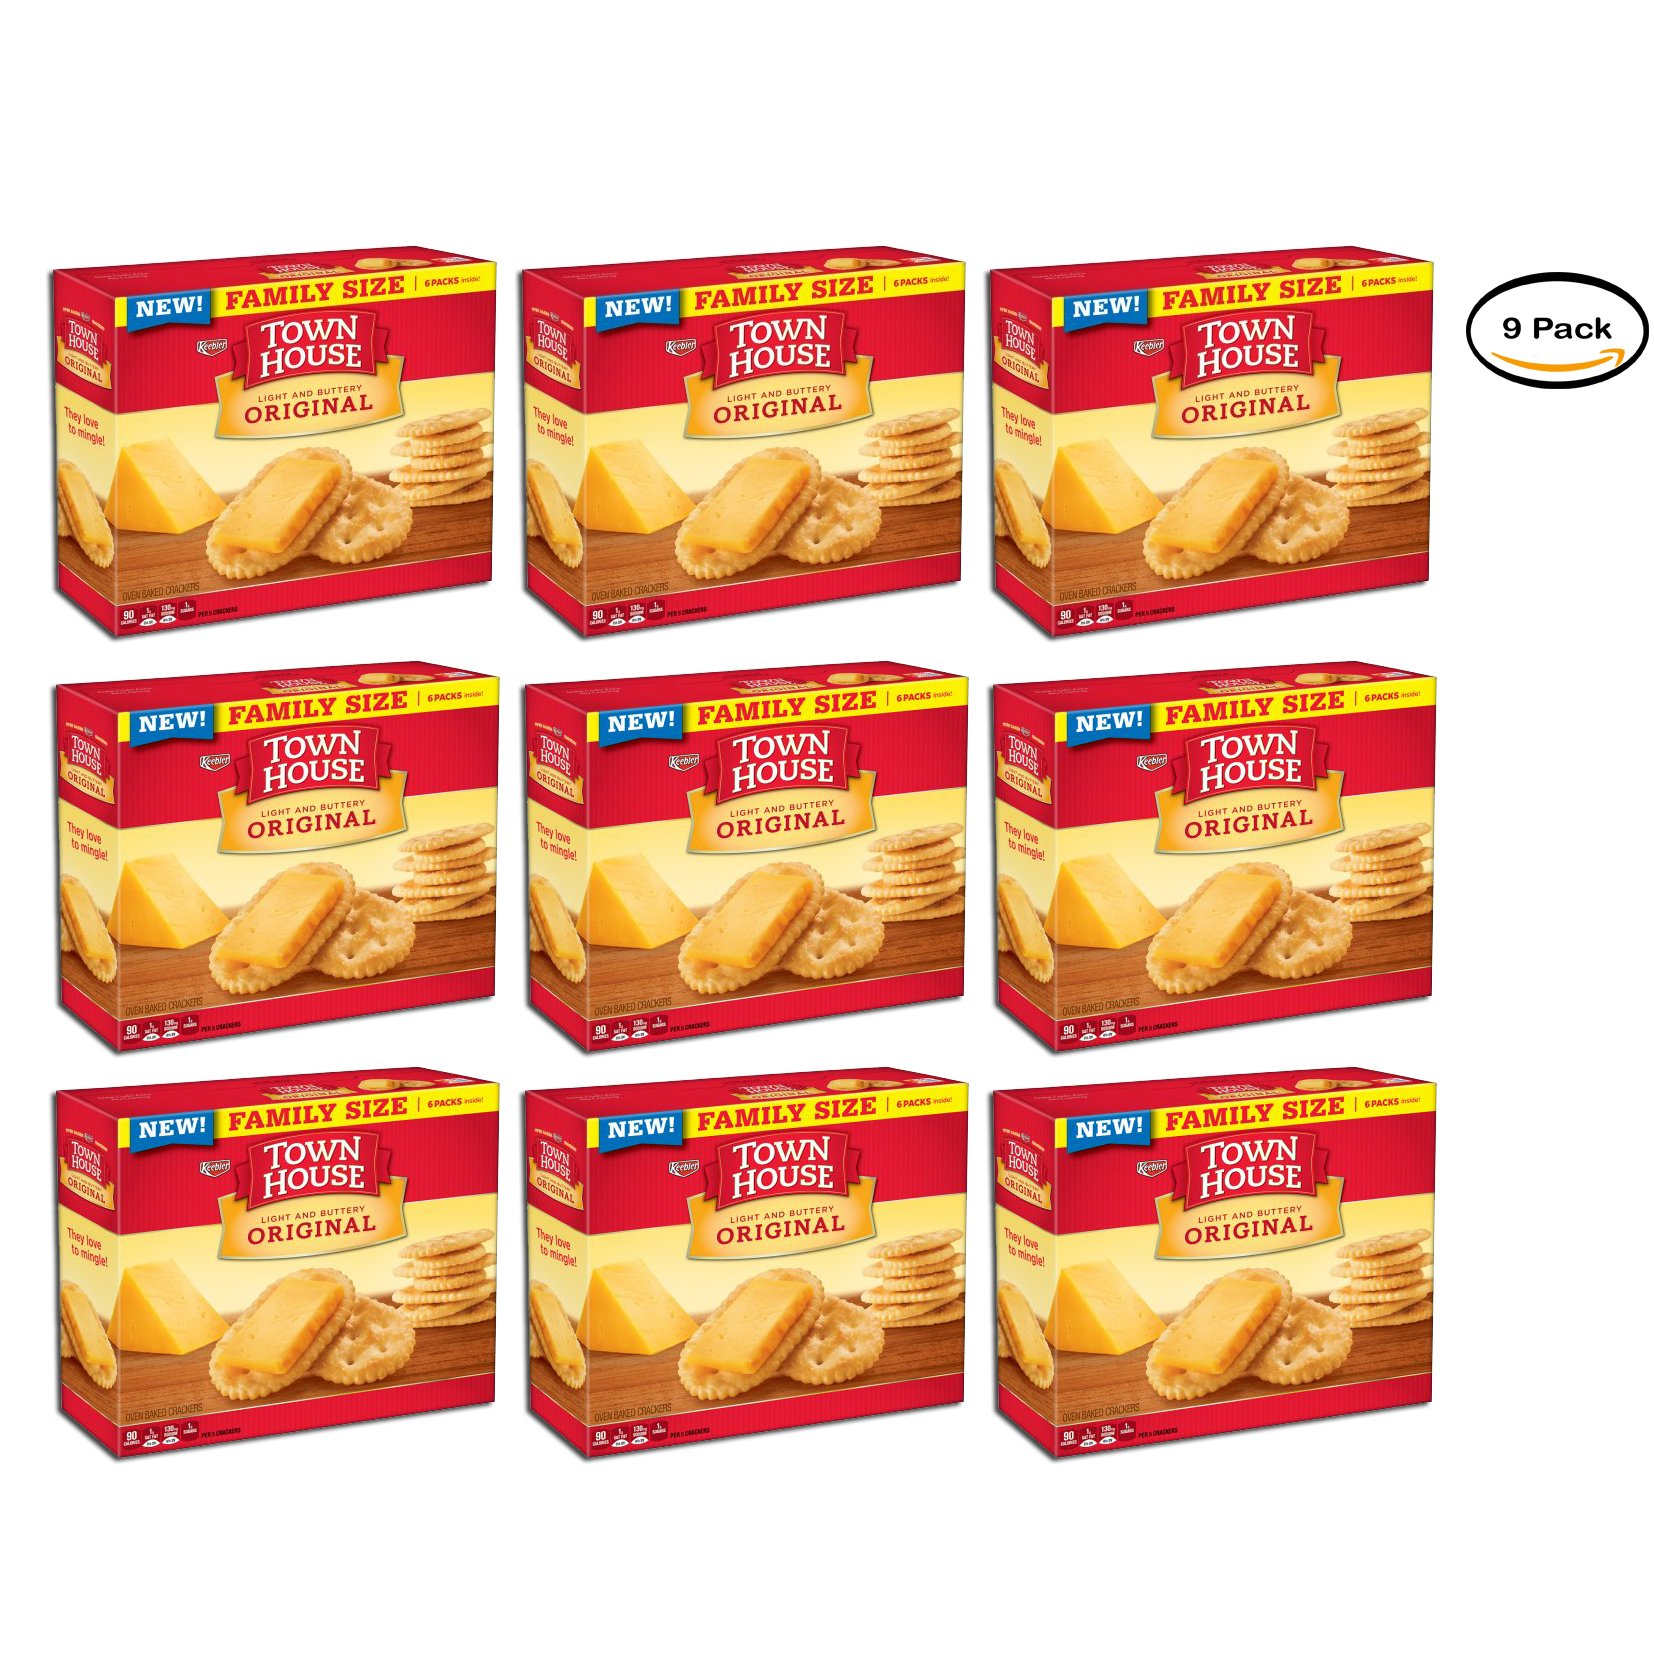 Keebler Town House Original Light and Buttery Oven Baked Crackers 20.7 oz. Box by Townhouse